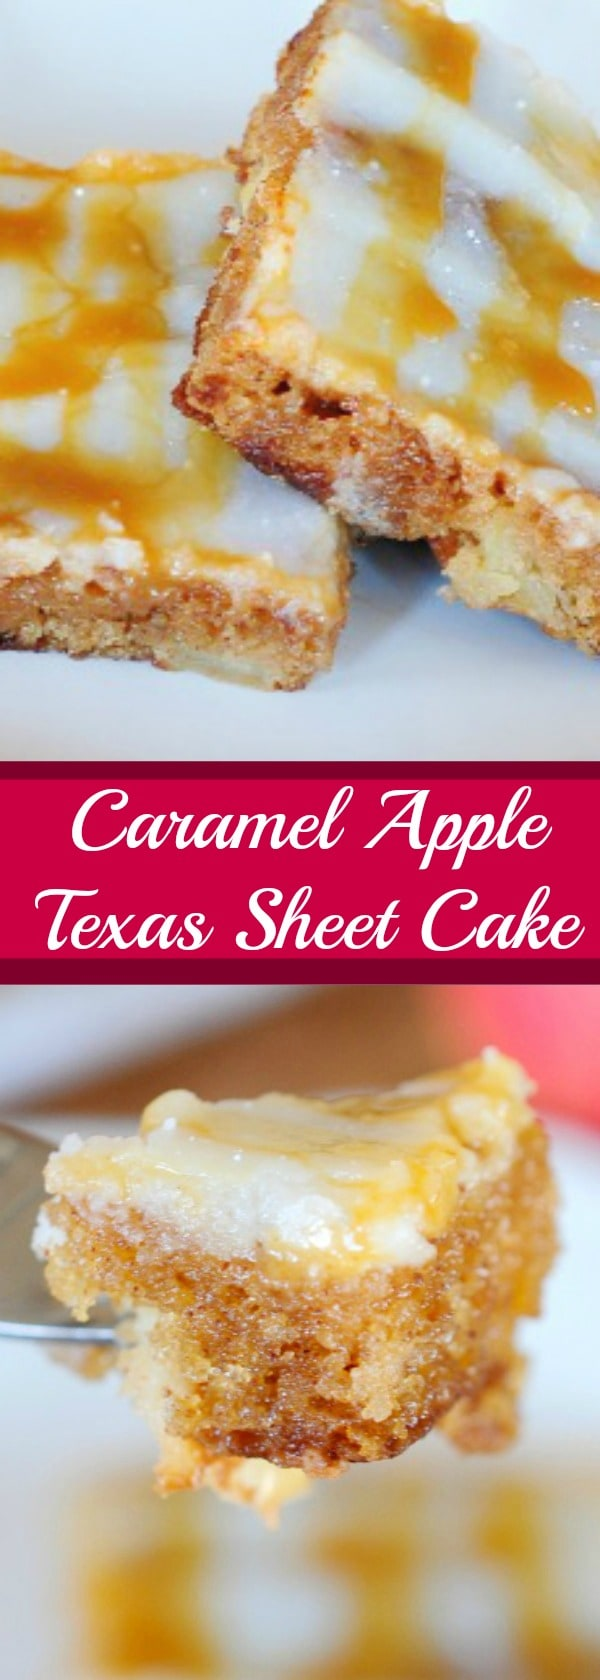 Caramel Apple Texas Sheet Cake